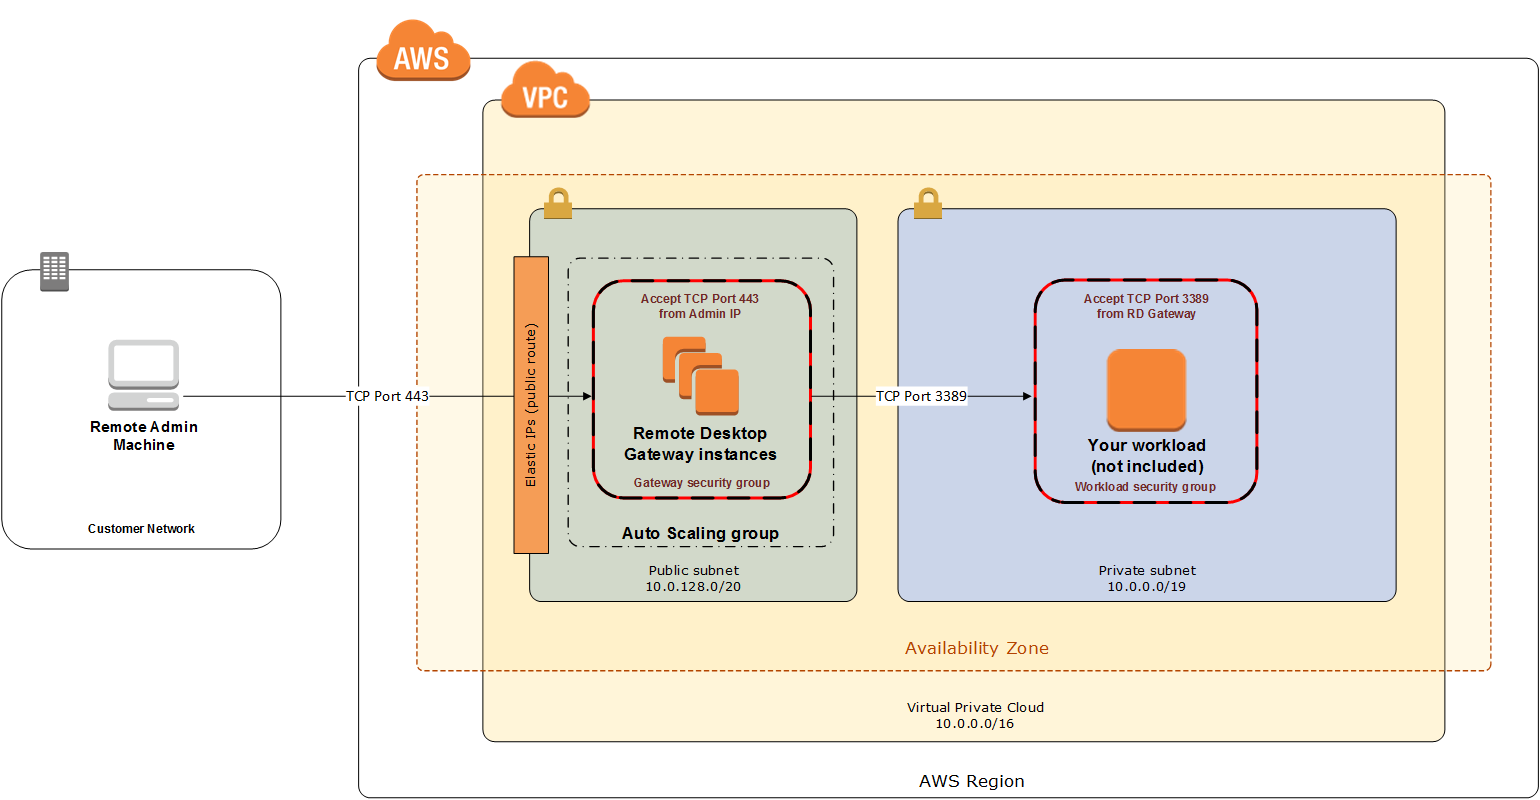 Architecture - RD Gateway on AWS